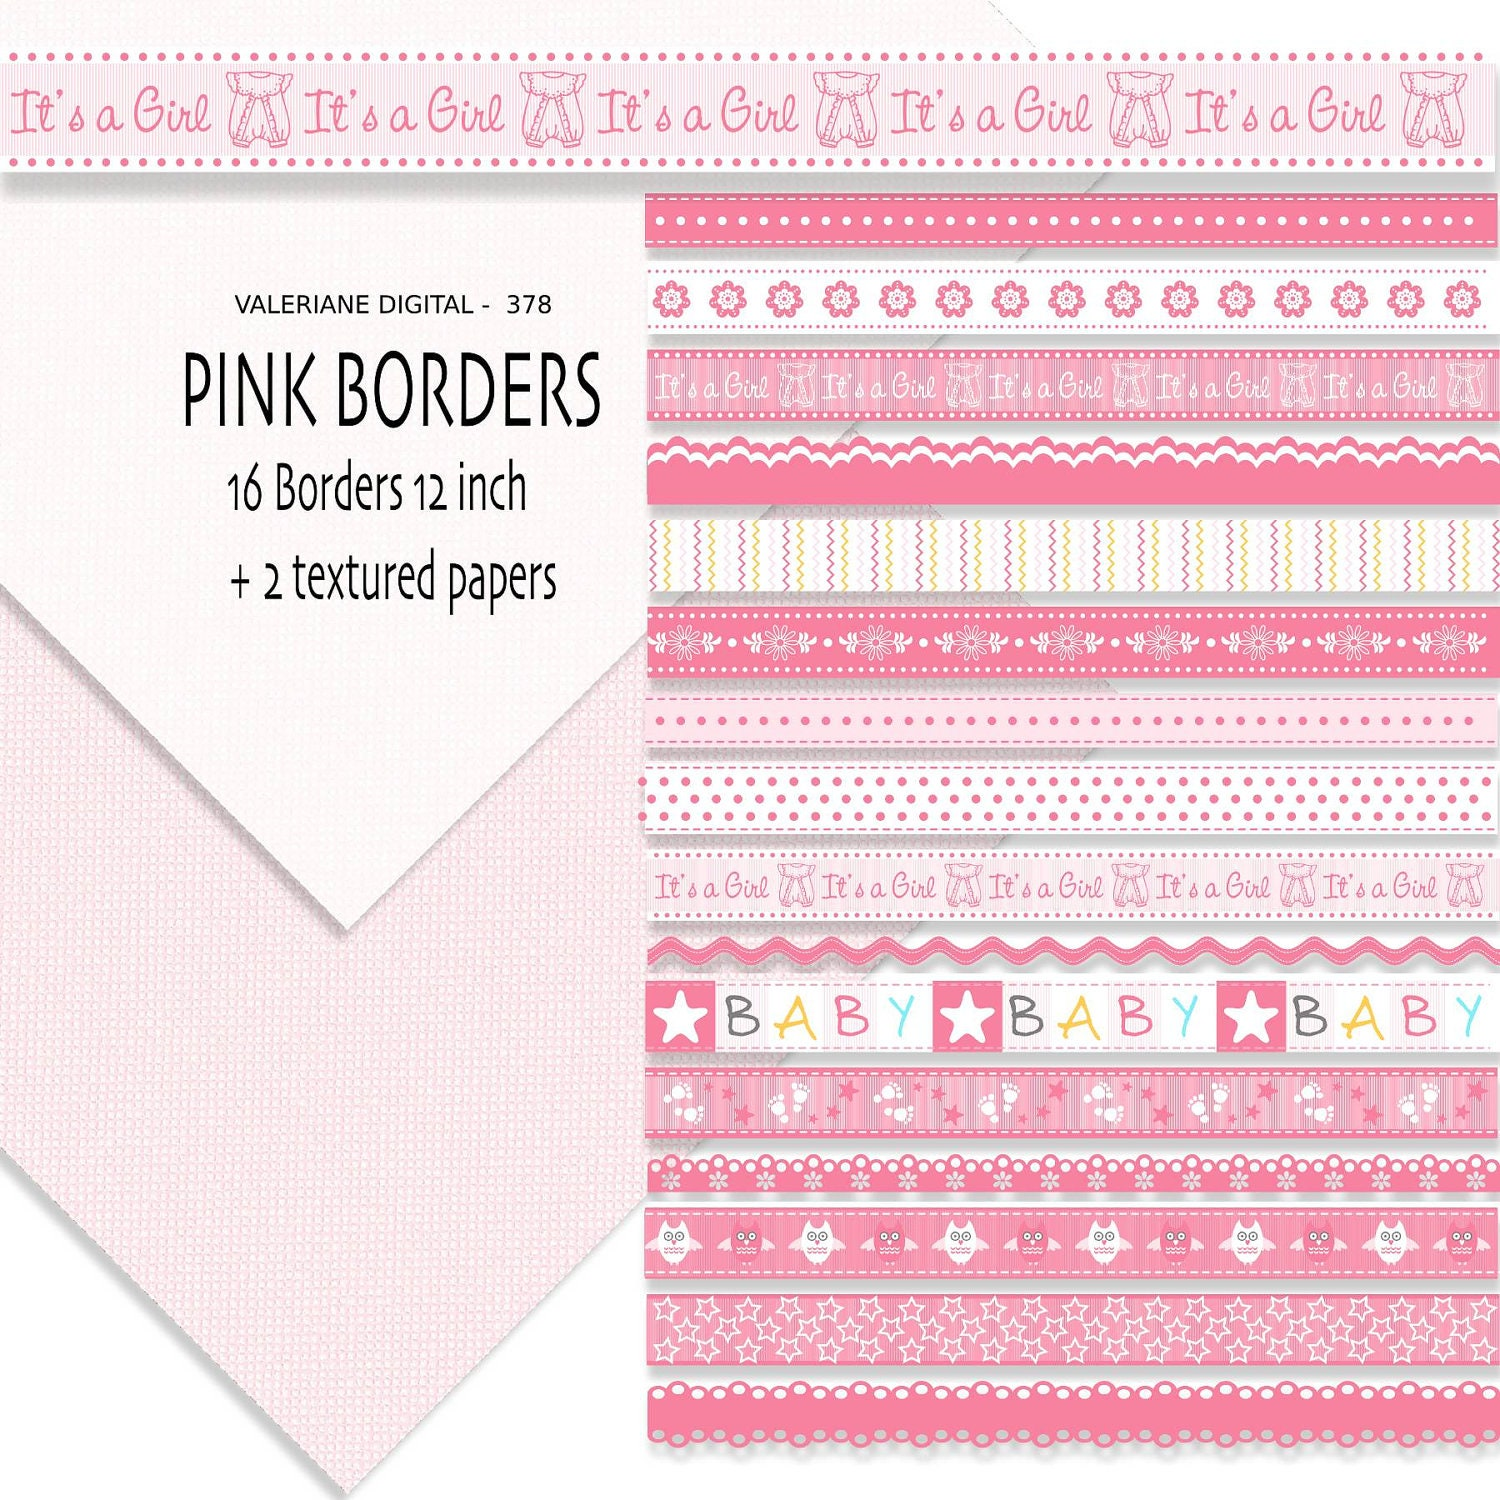 Baby pink ribbon border